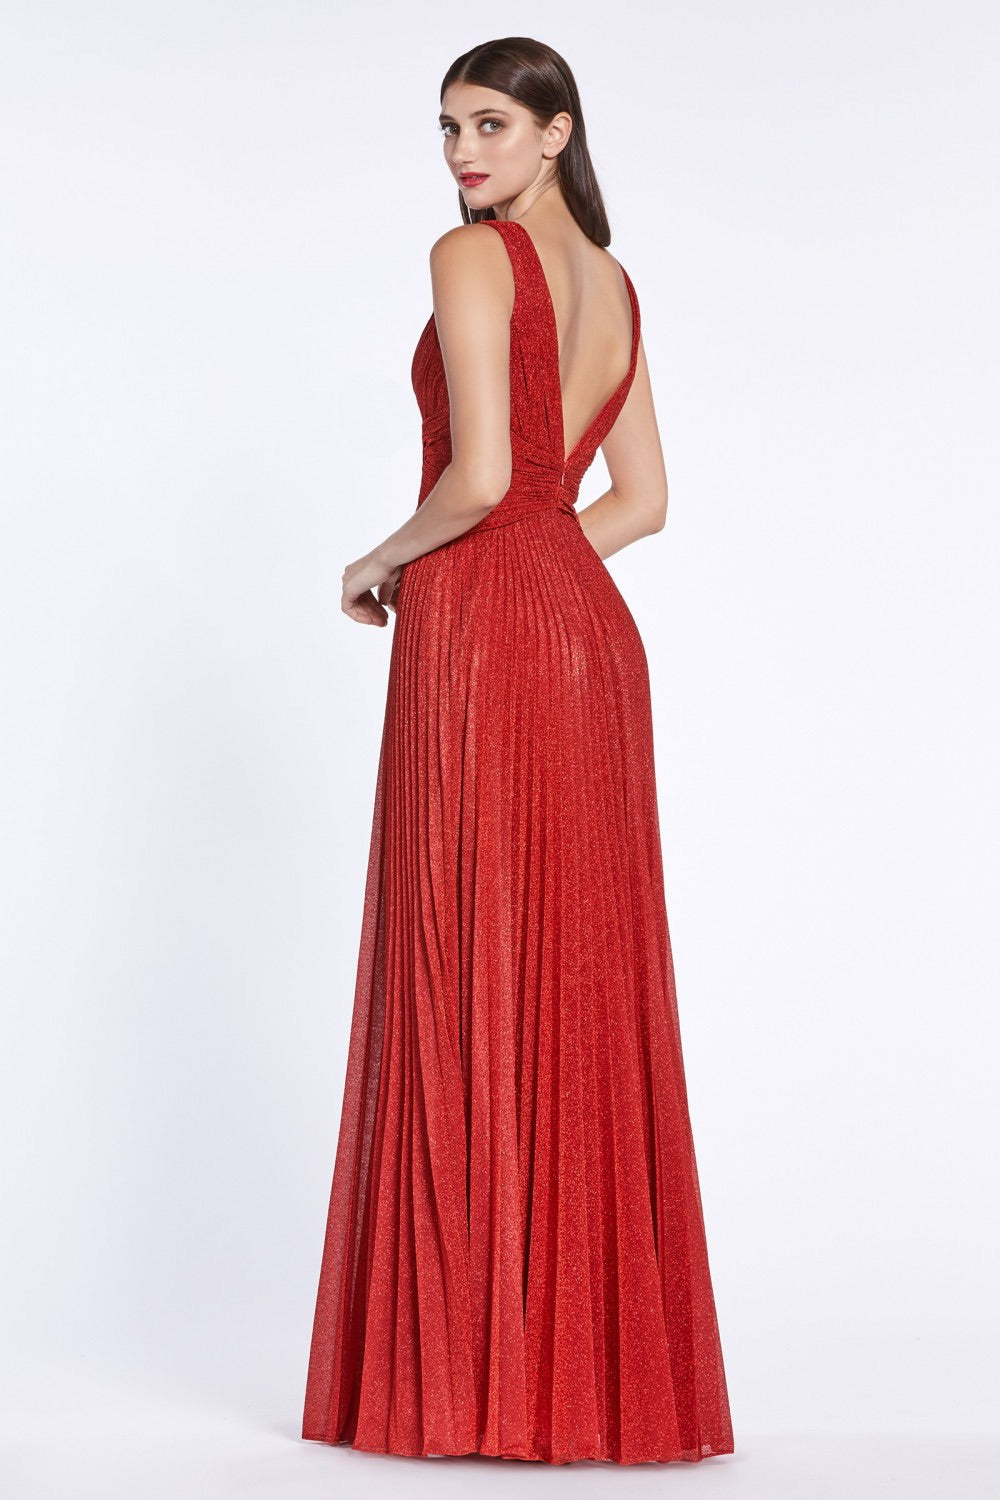 Cinderella Divine CJ530 Evening Dress - CYC Boutique